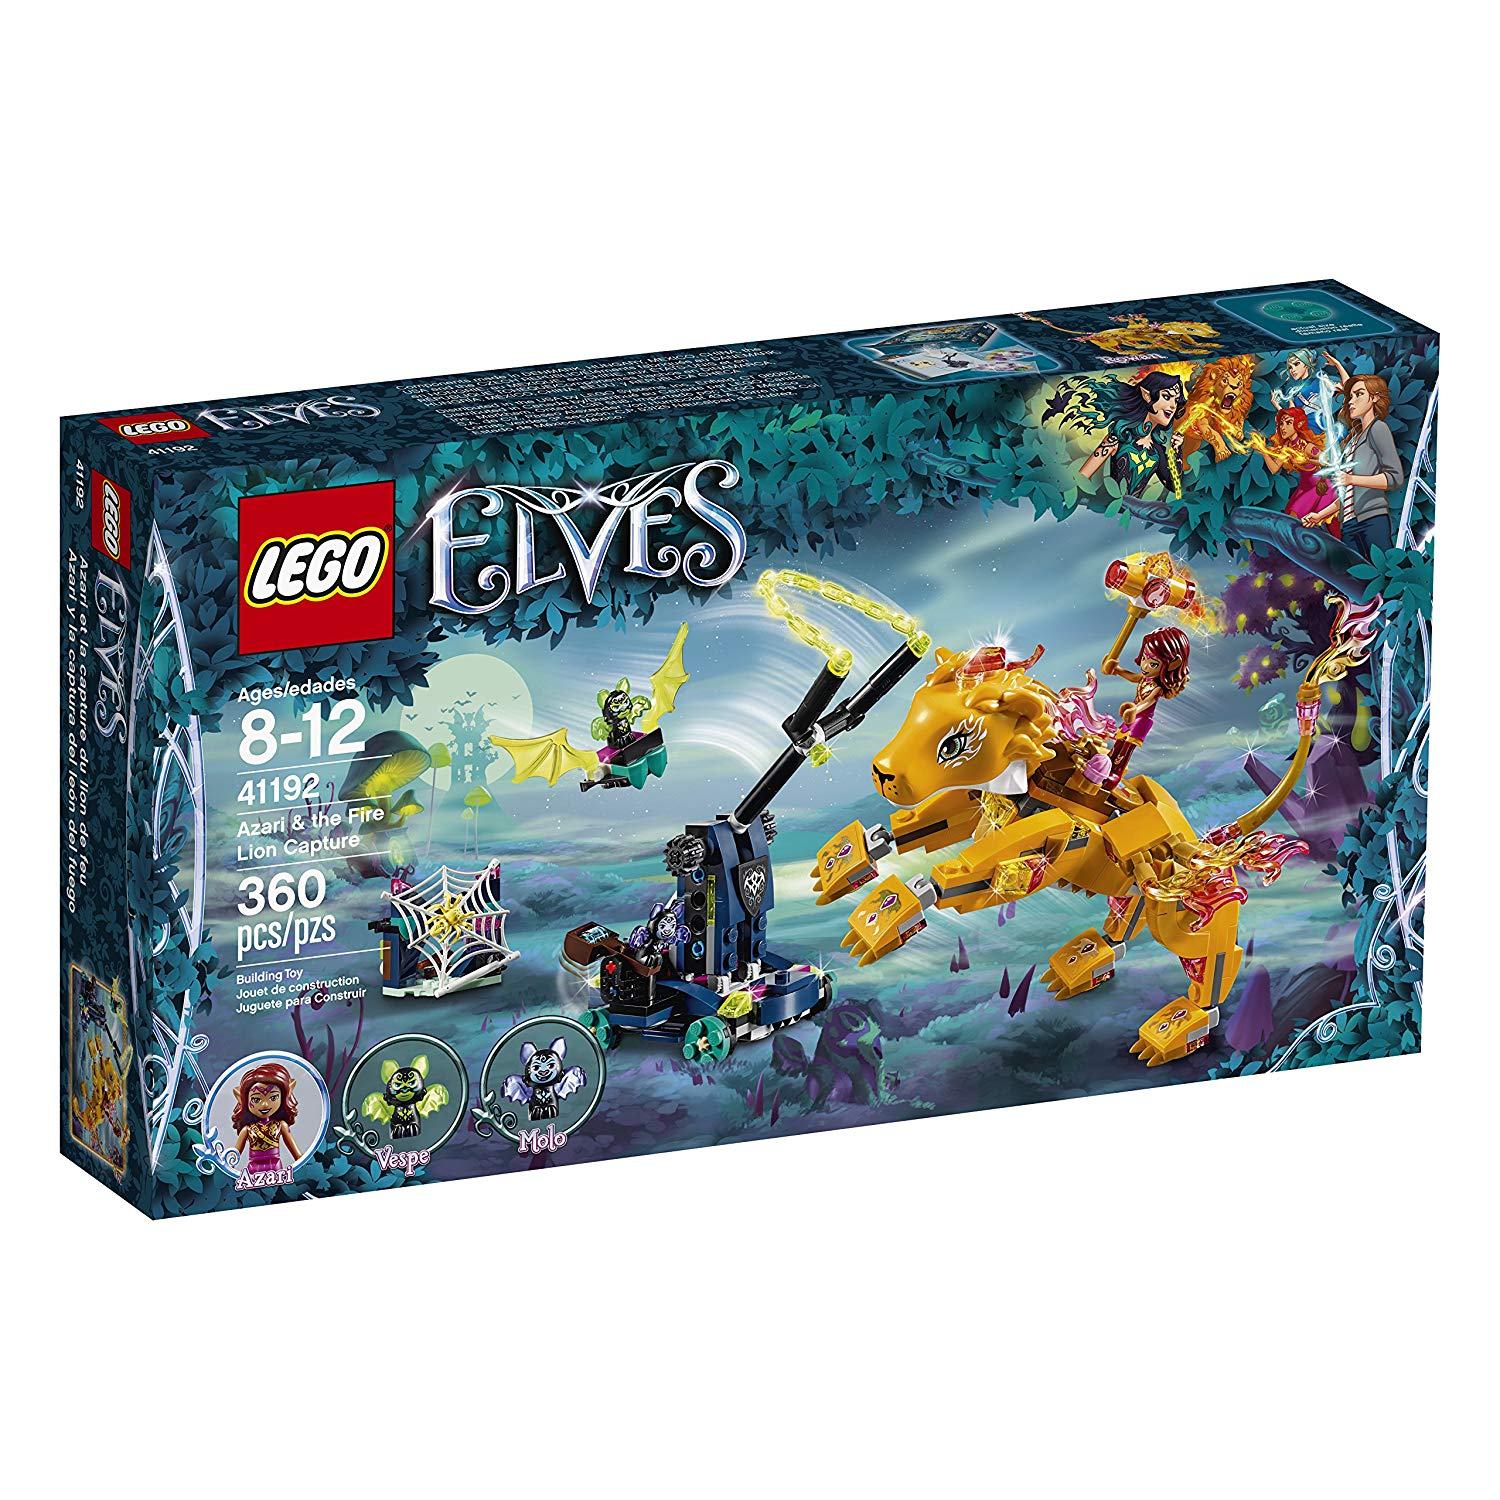 LEGO Elves Azari & The Fire Lionキャプチャ41192の画像